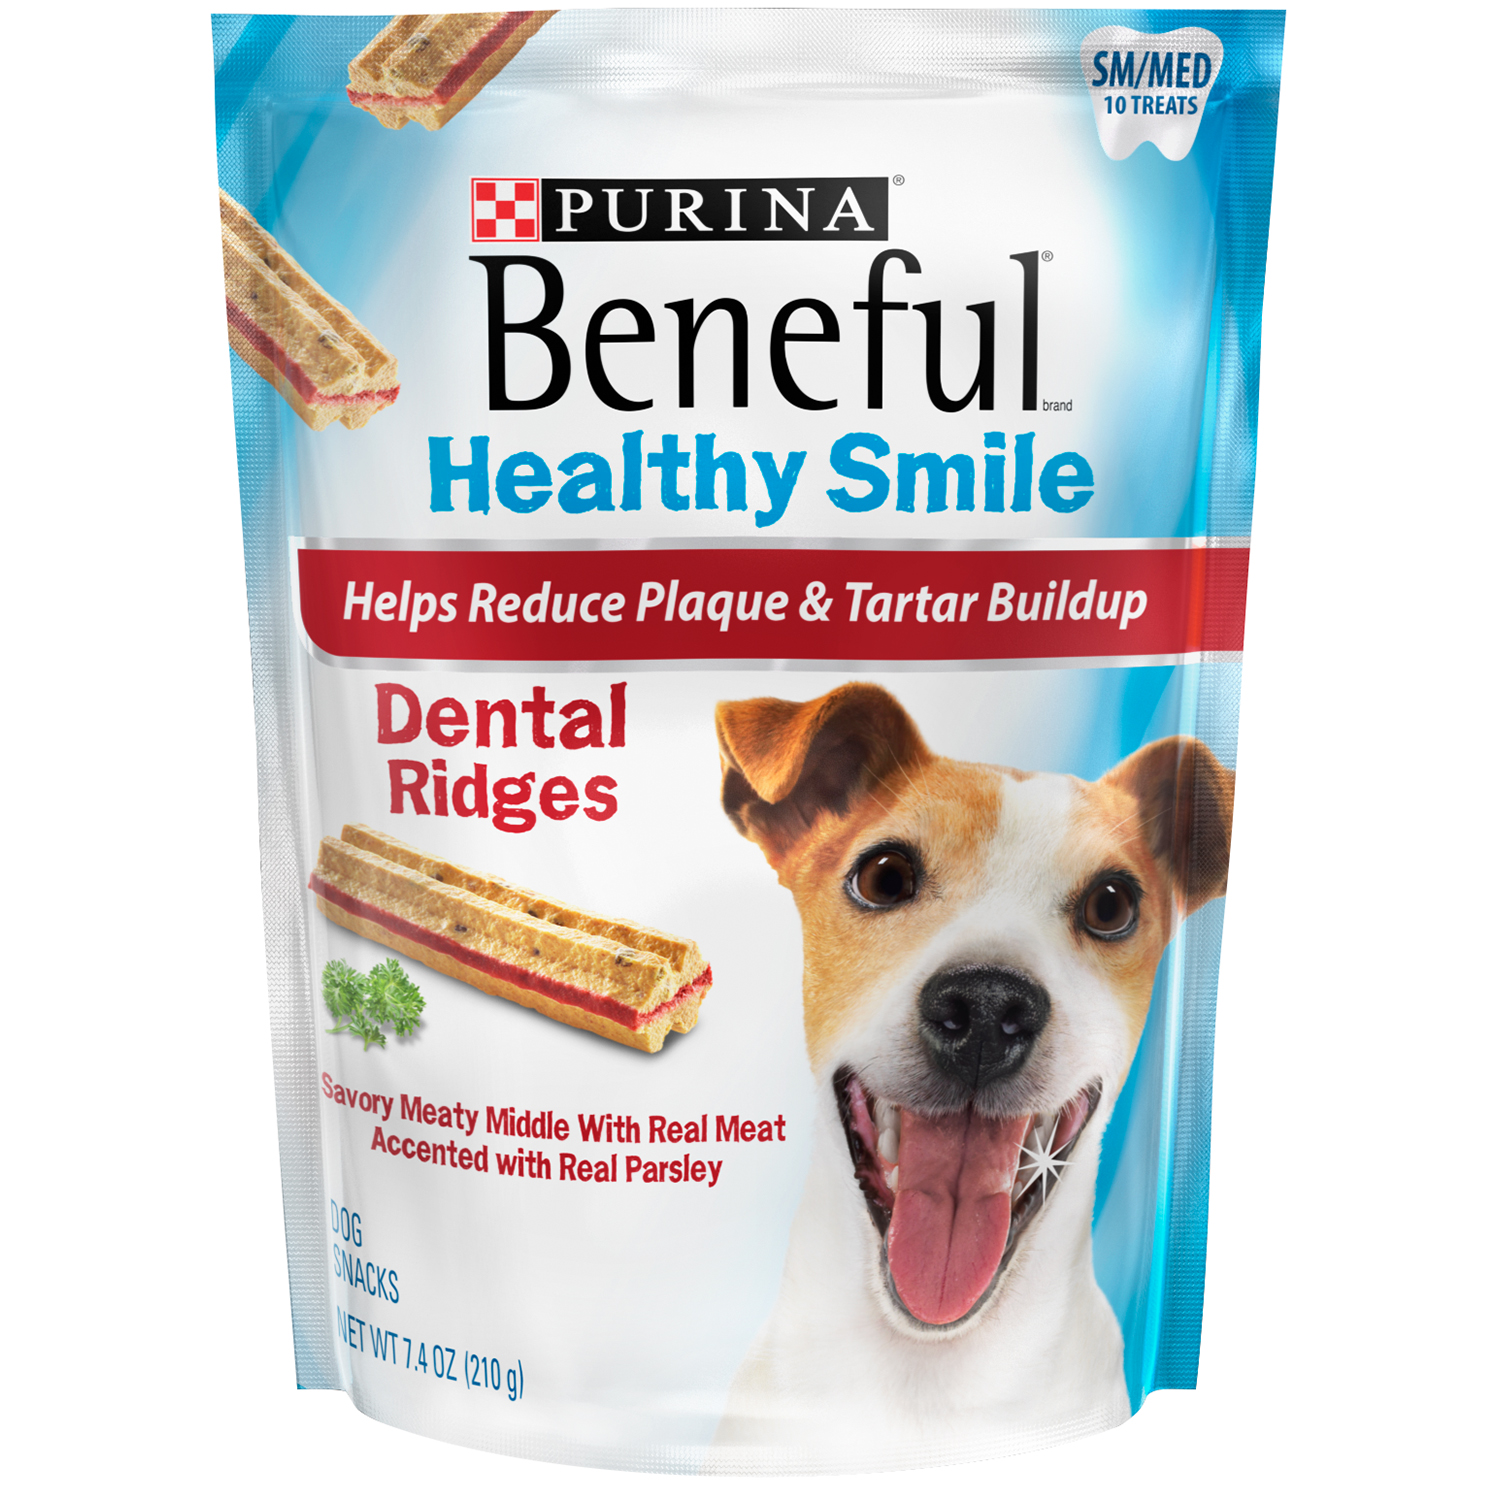 Purina Beneful Healthy Smile Dental Dog Treats Adult Small/Medium Ridges 7.4 oz. Pouch